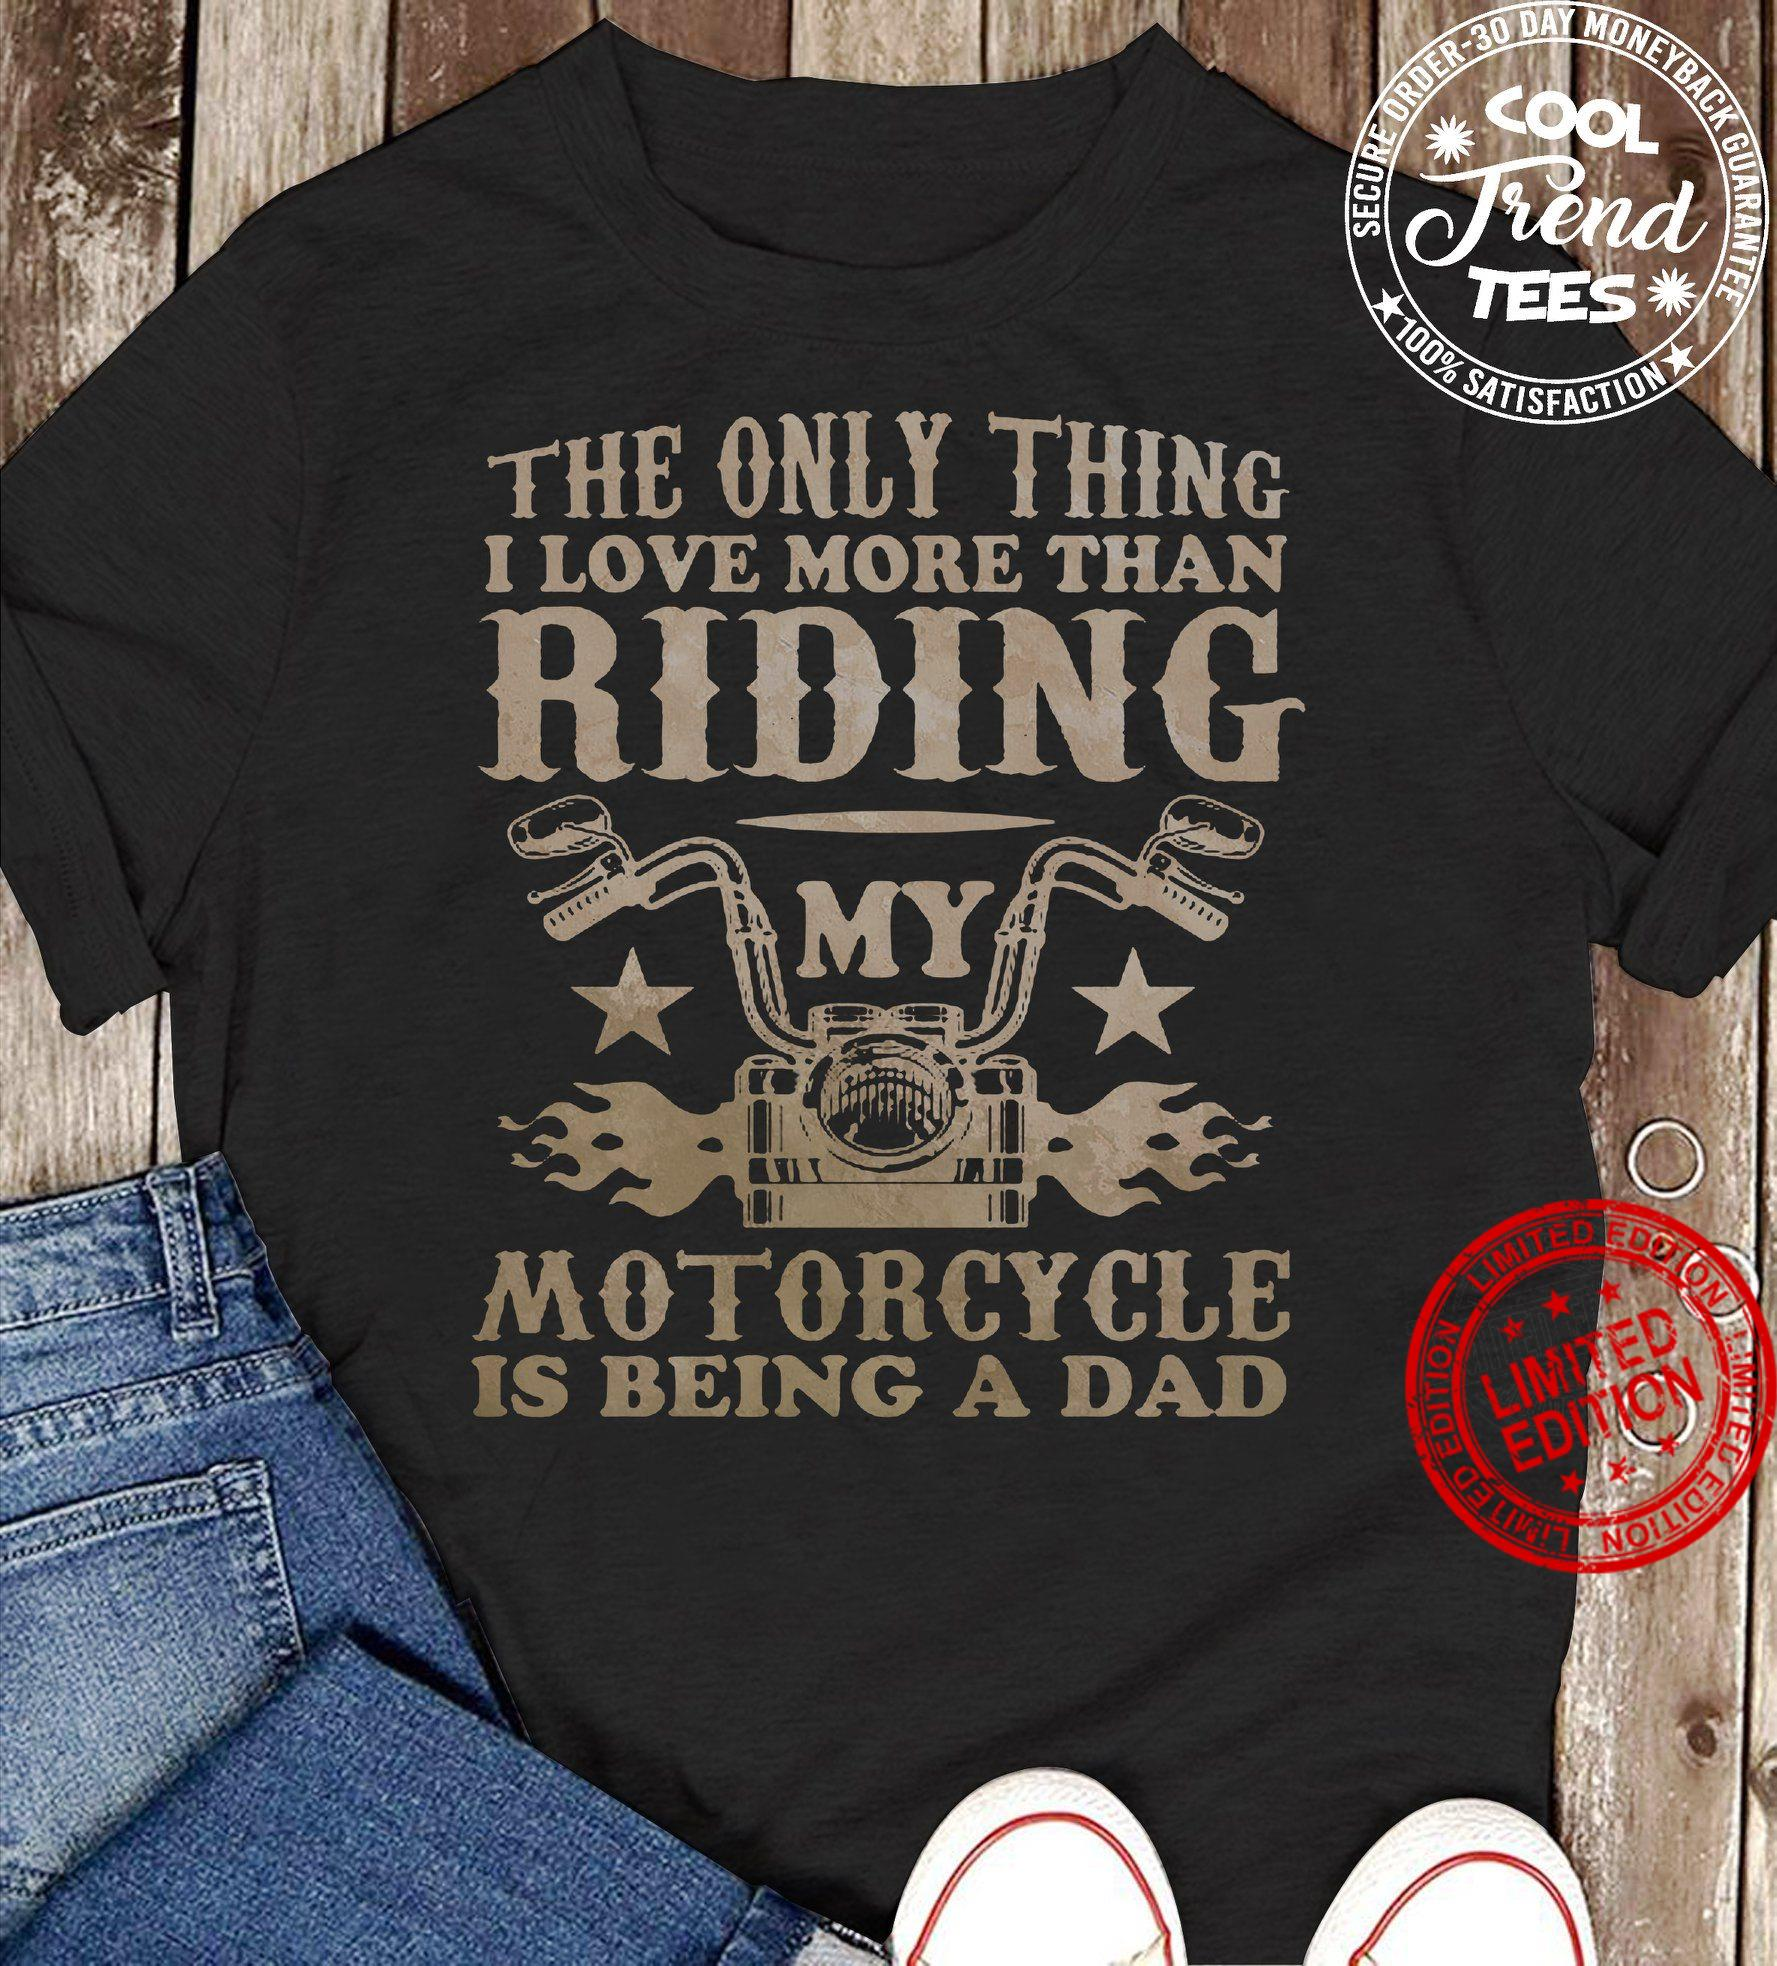 The Only Thing I Love More Than Riding My Motorcycle Is Being A Dad Shirt